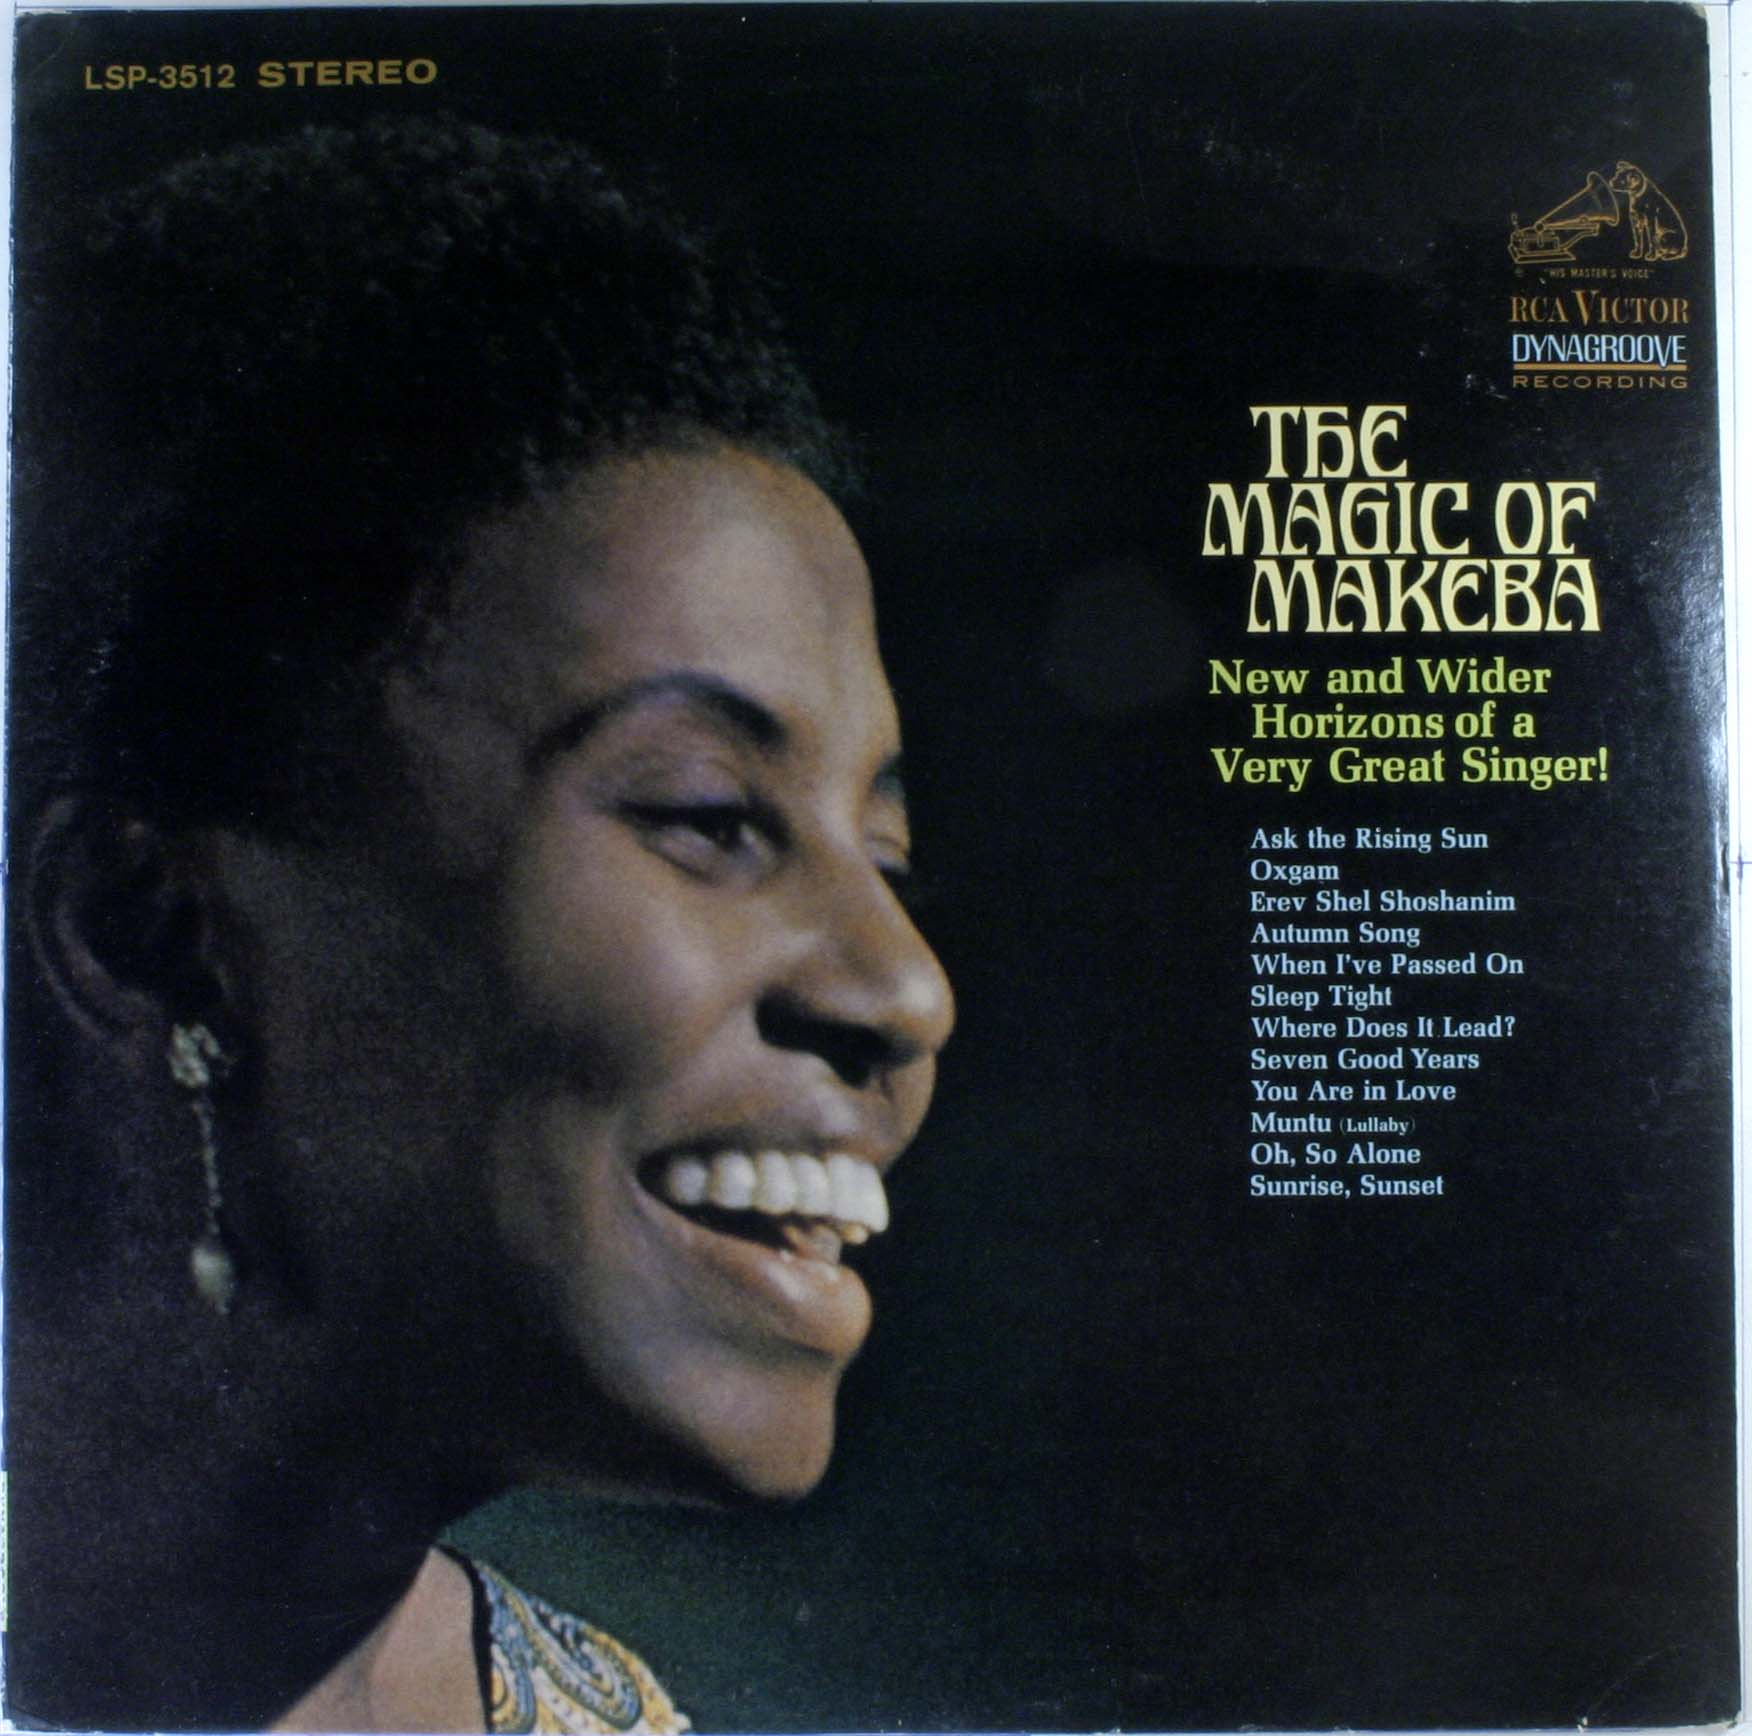 The Magic Of Makeba